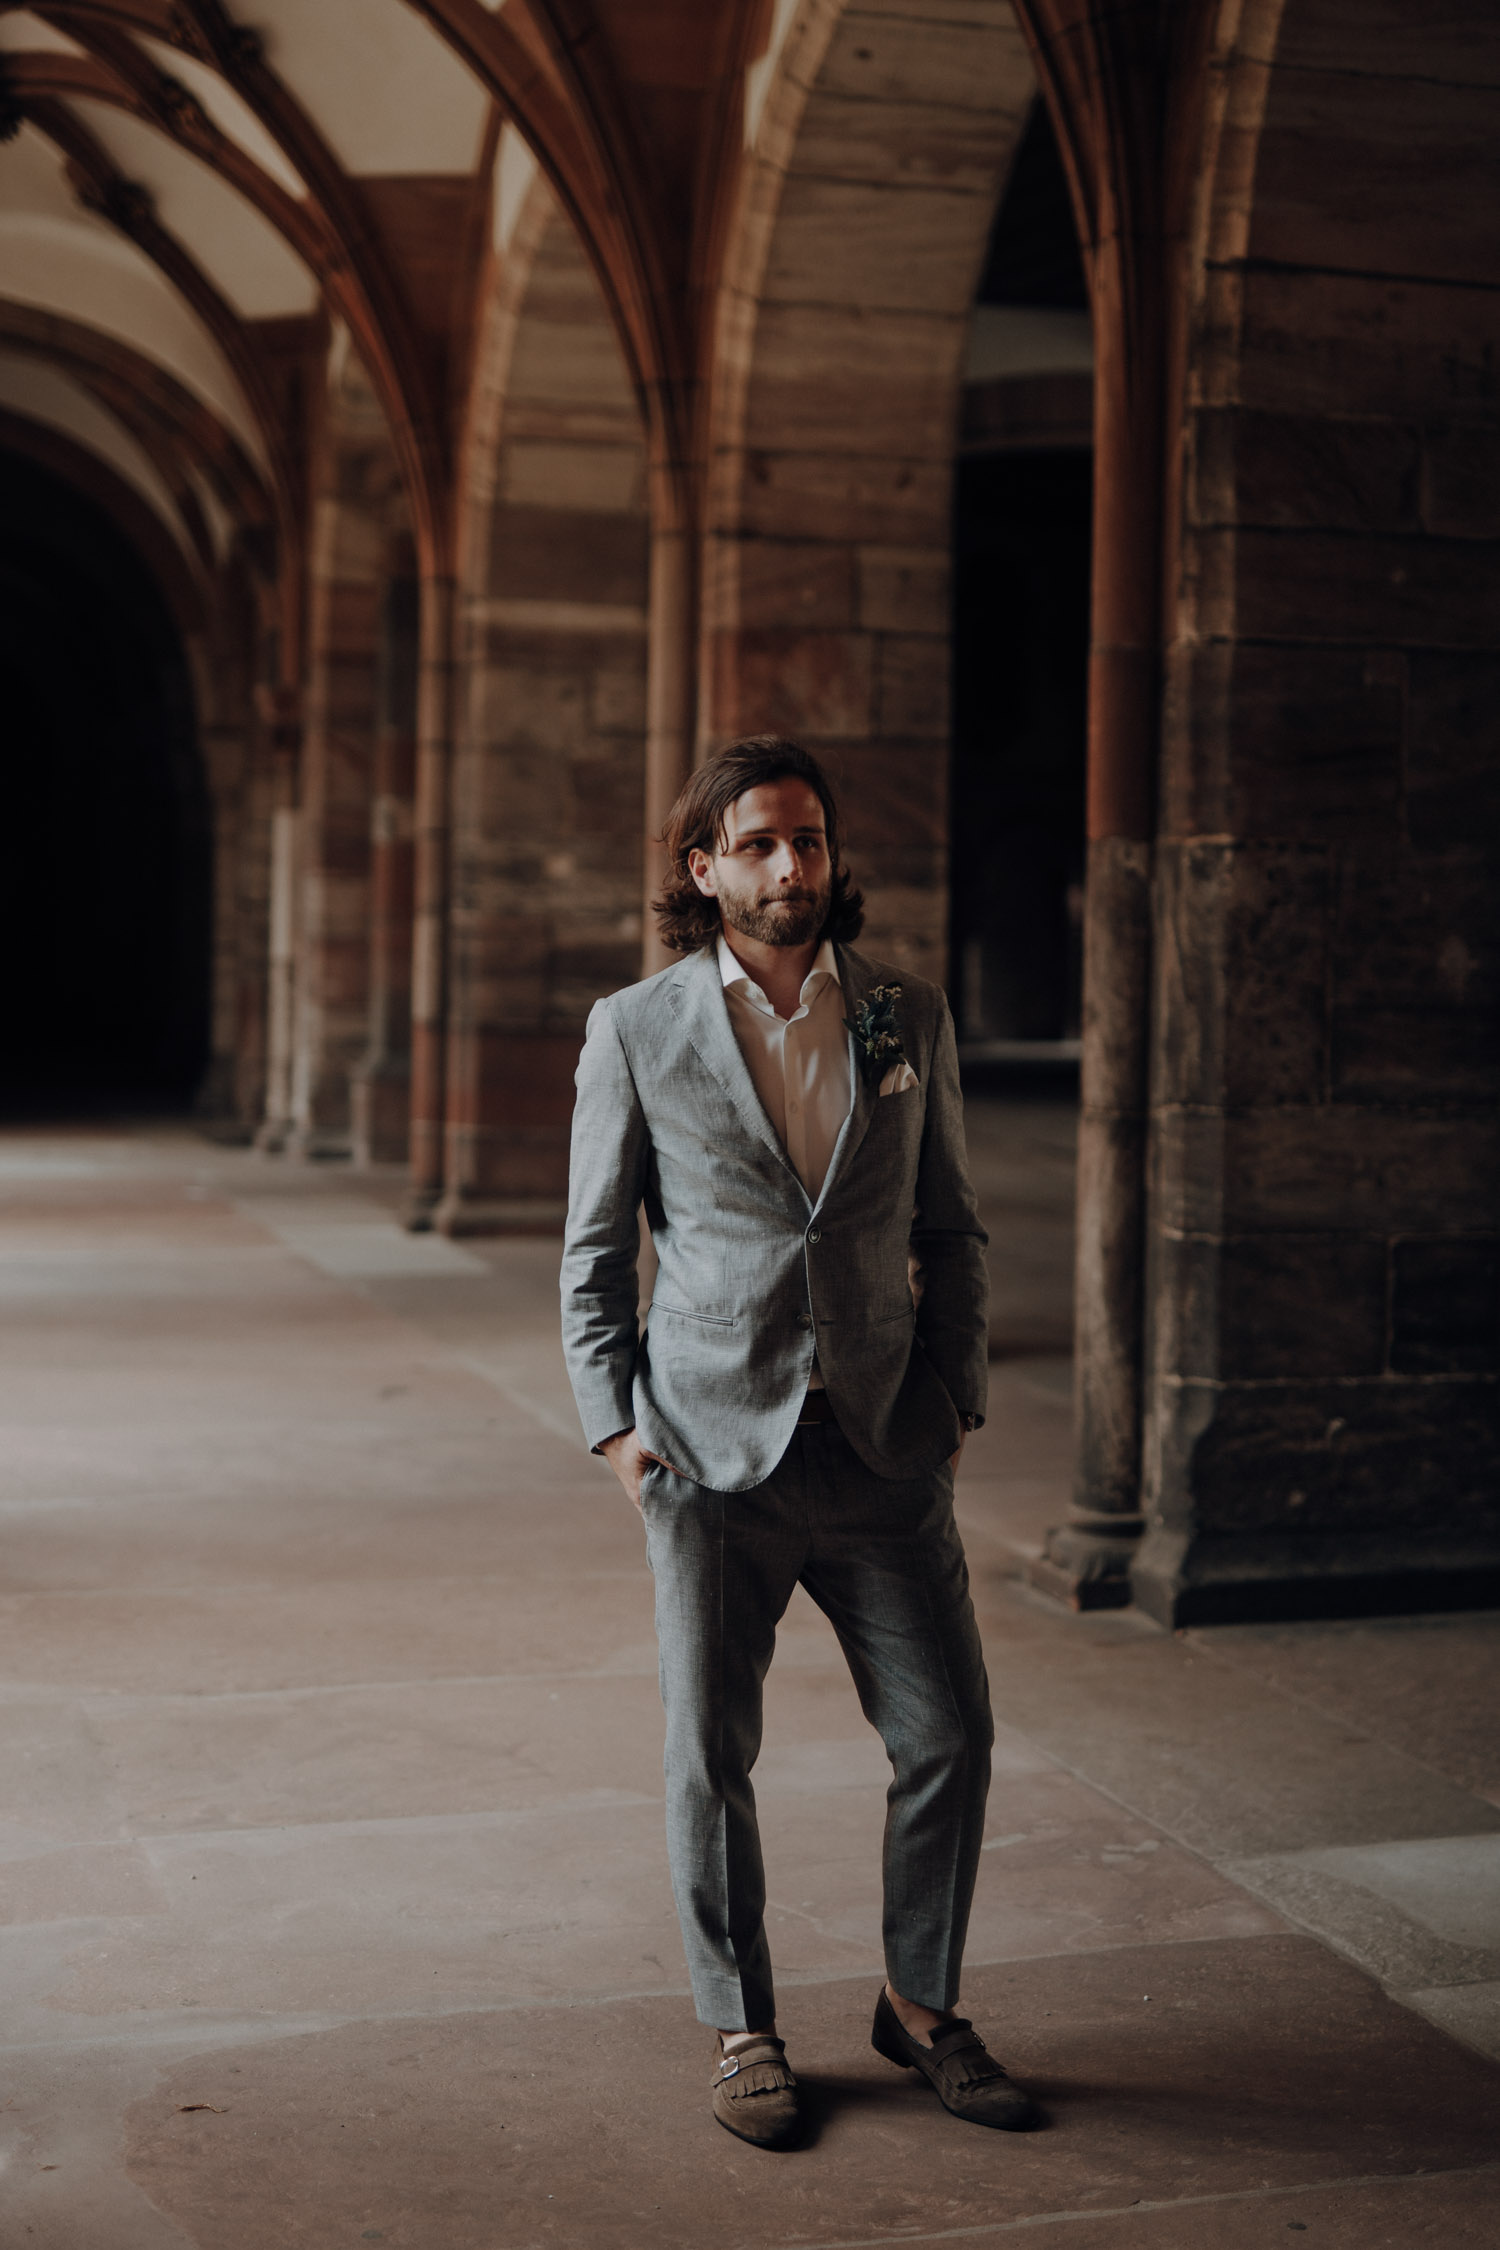 Wedding photographer switzerland basel natural unposed civil wedding old town Basel Minster couple shoot bohemian style groom waiting first look